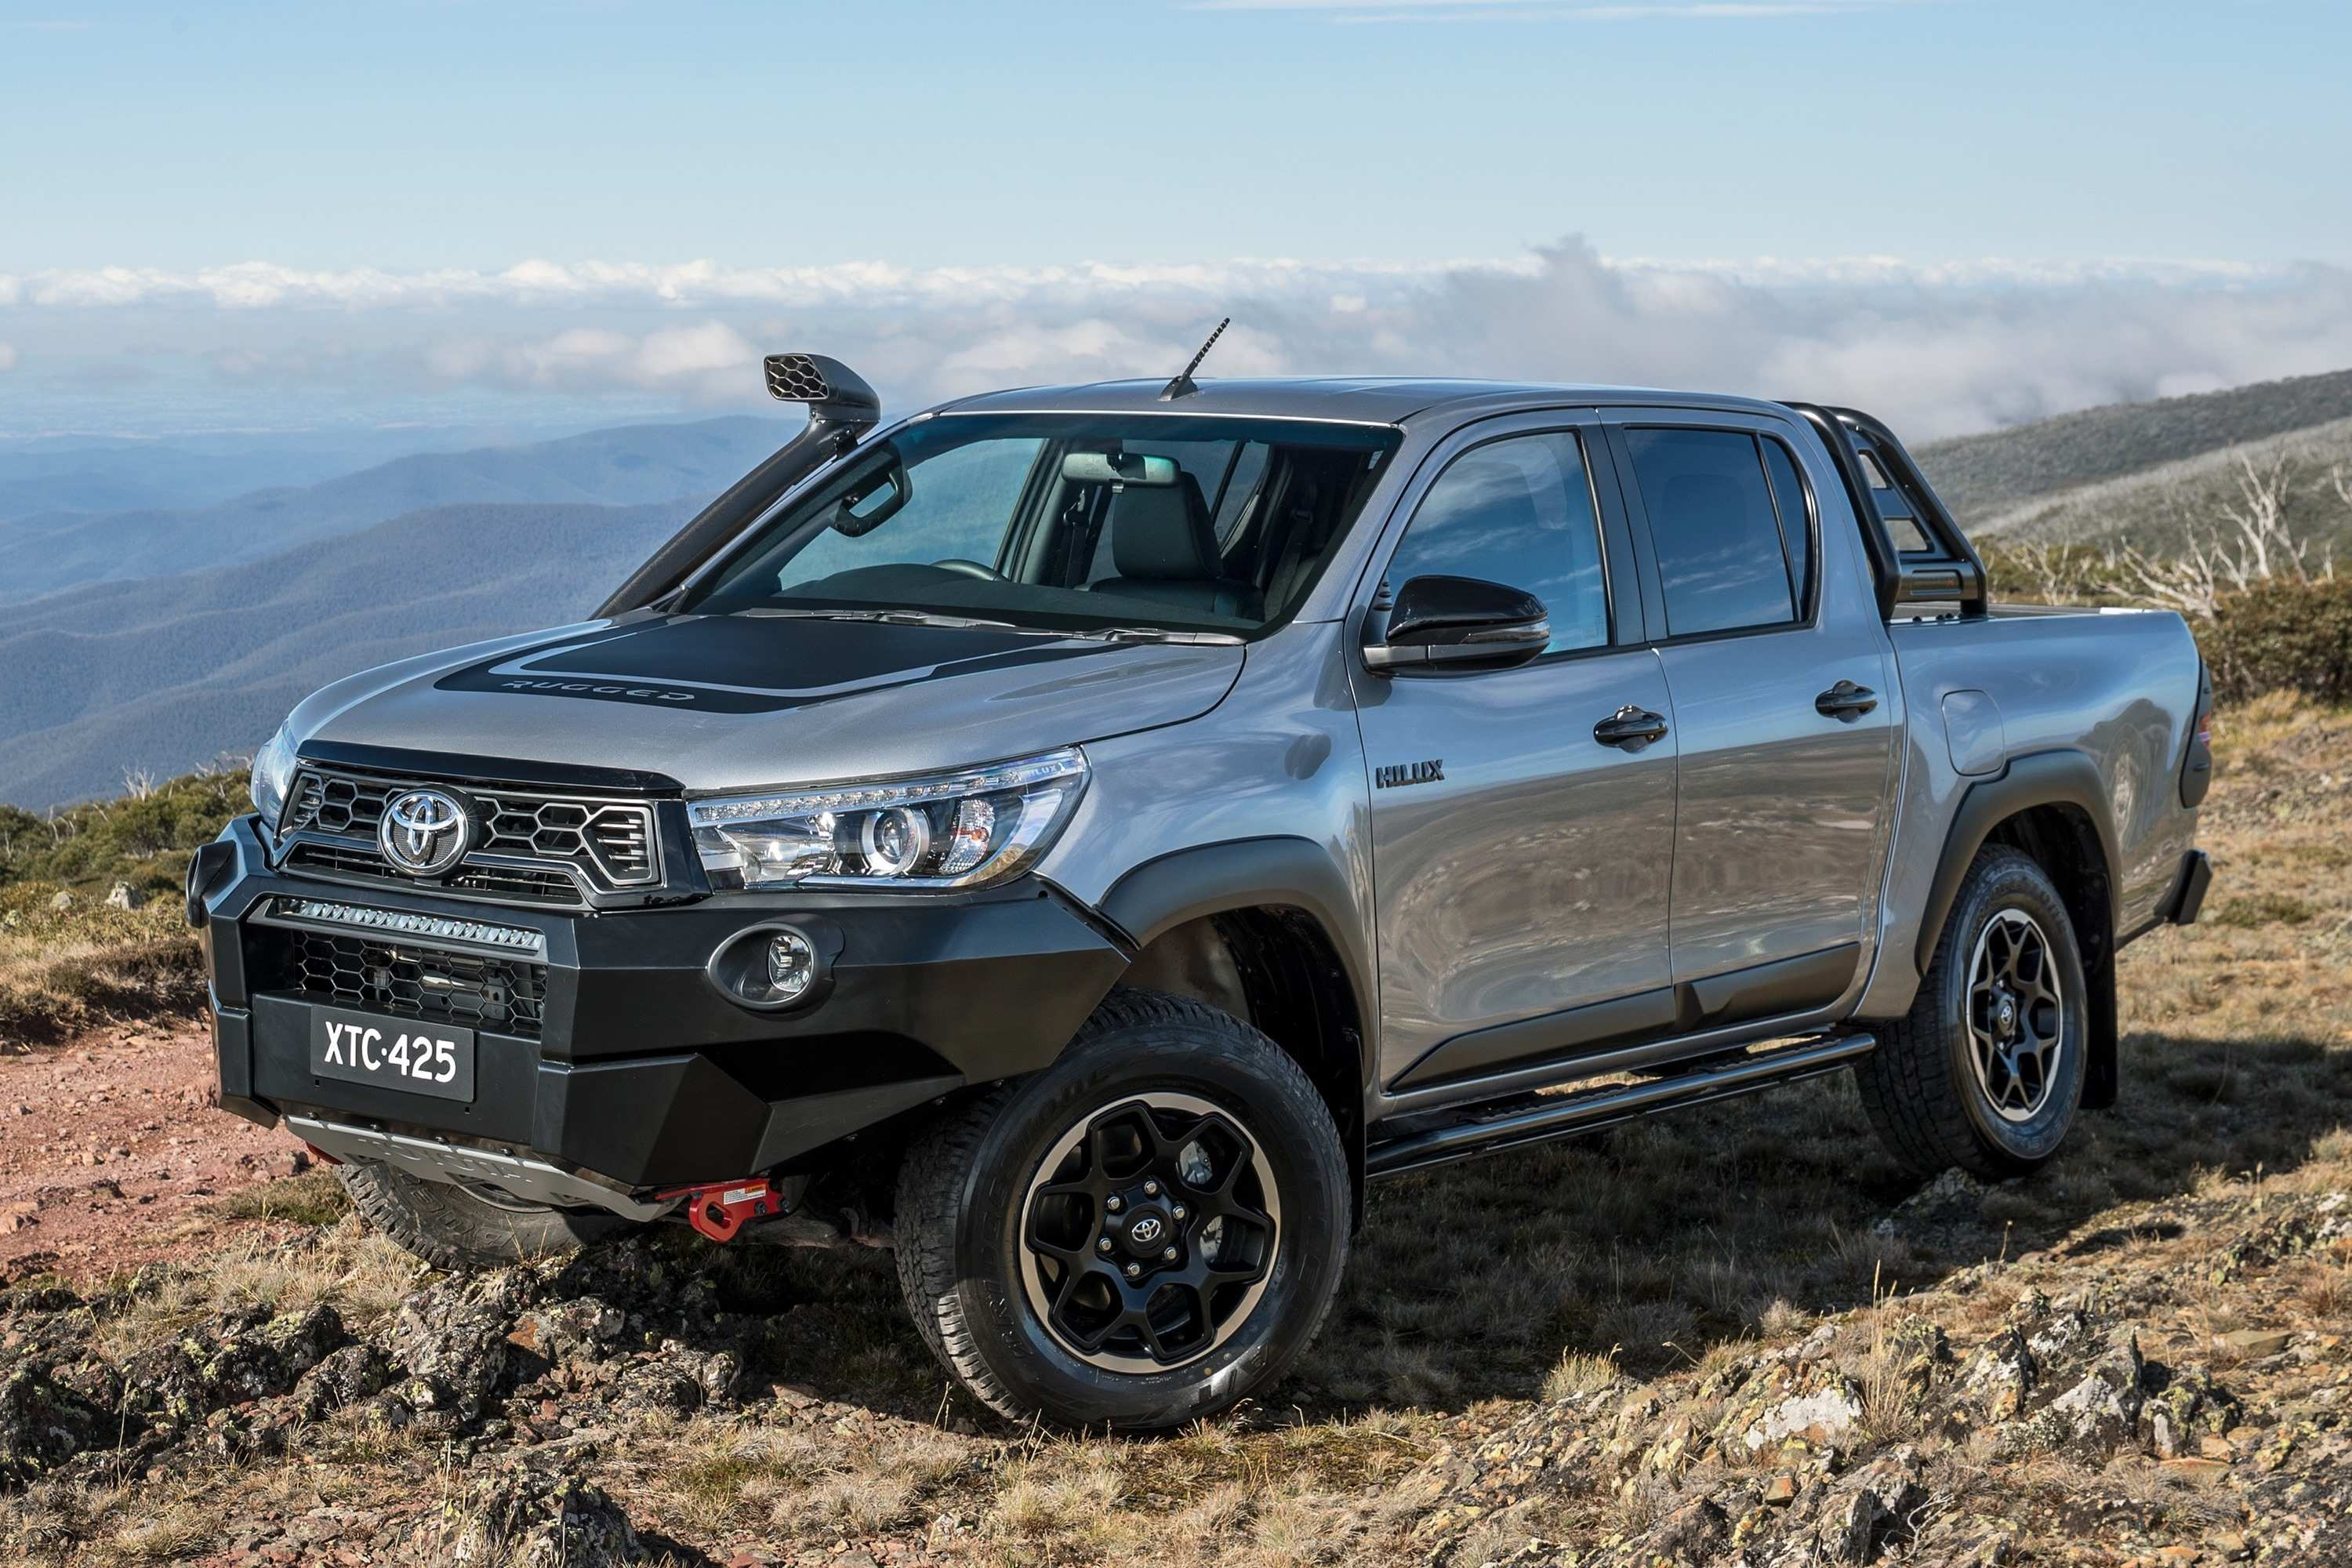 89 Great 2019 Toyota Hilux Images by 2019 Toyota Hilux